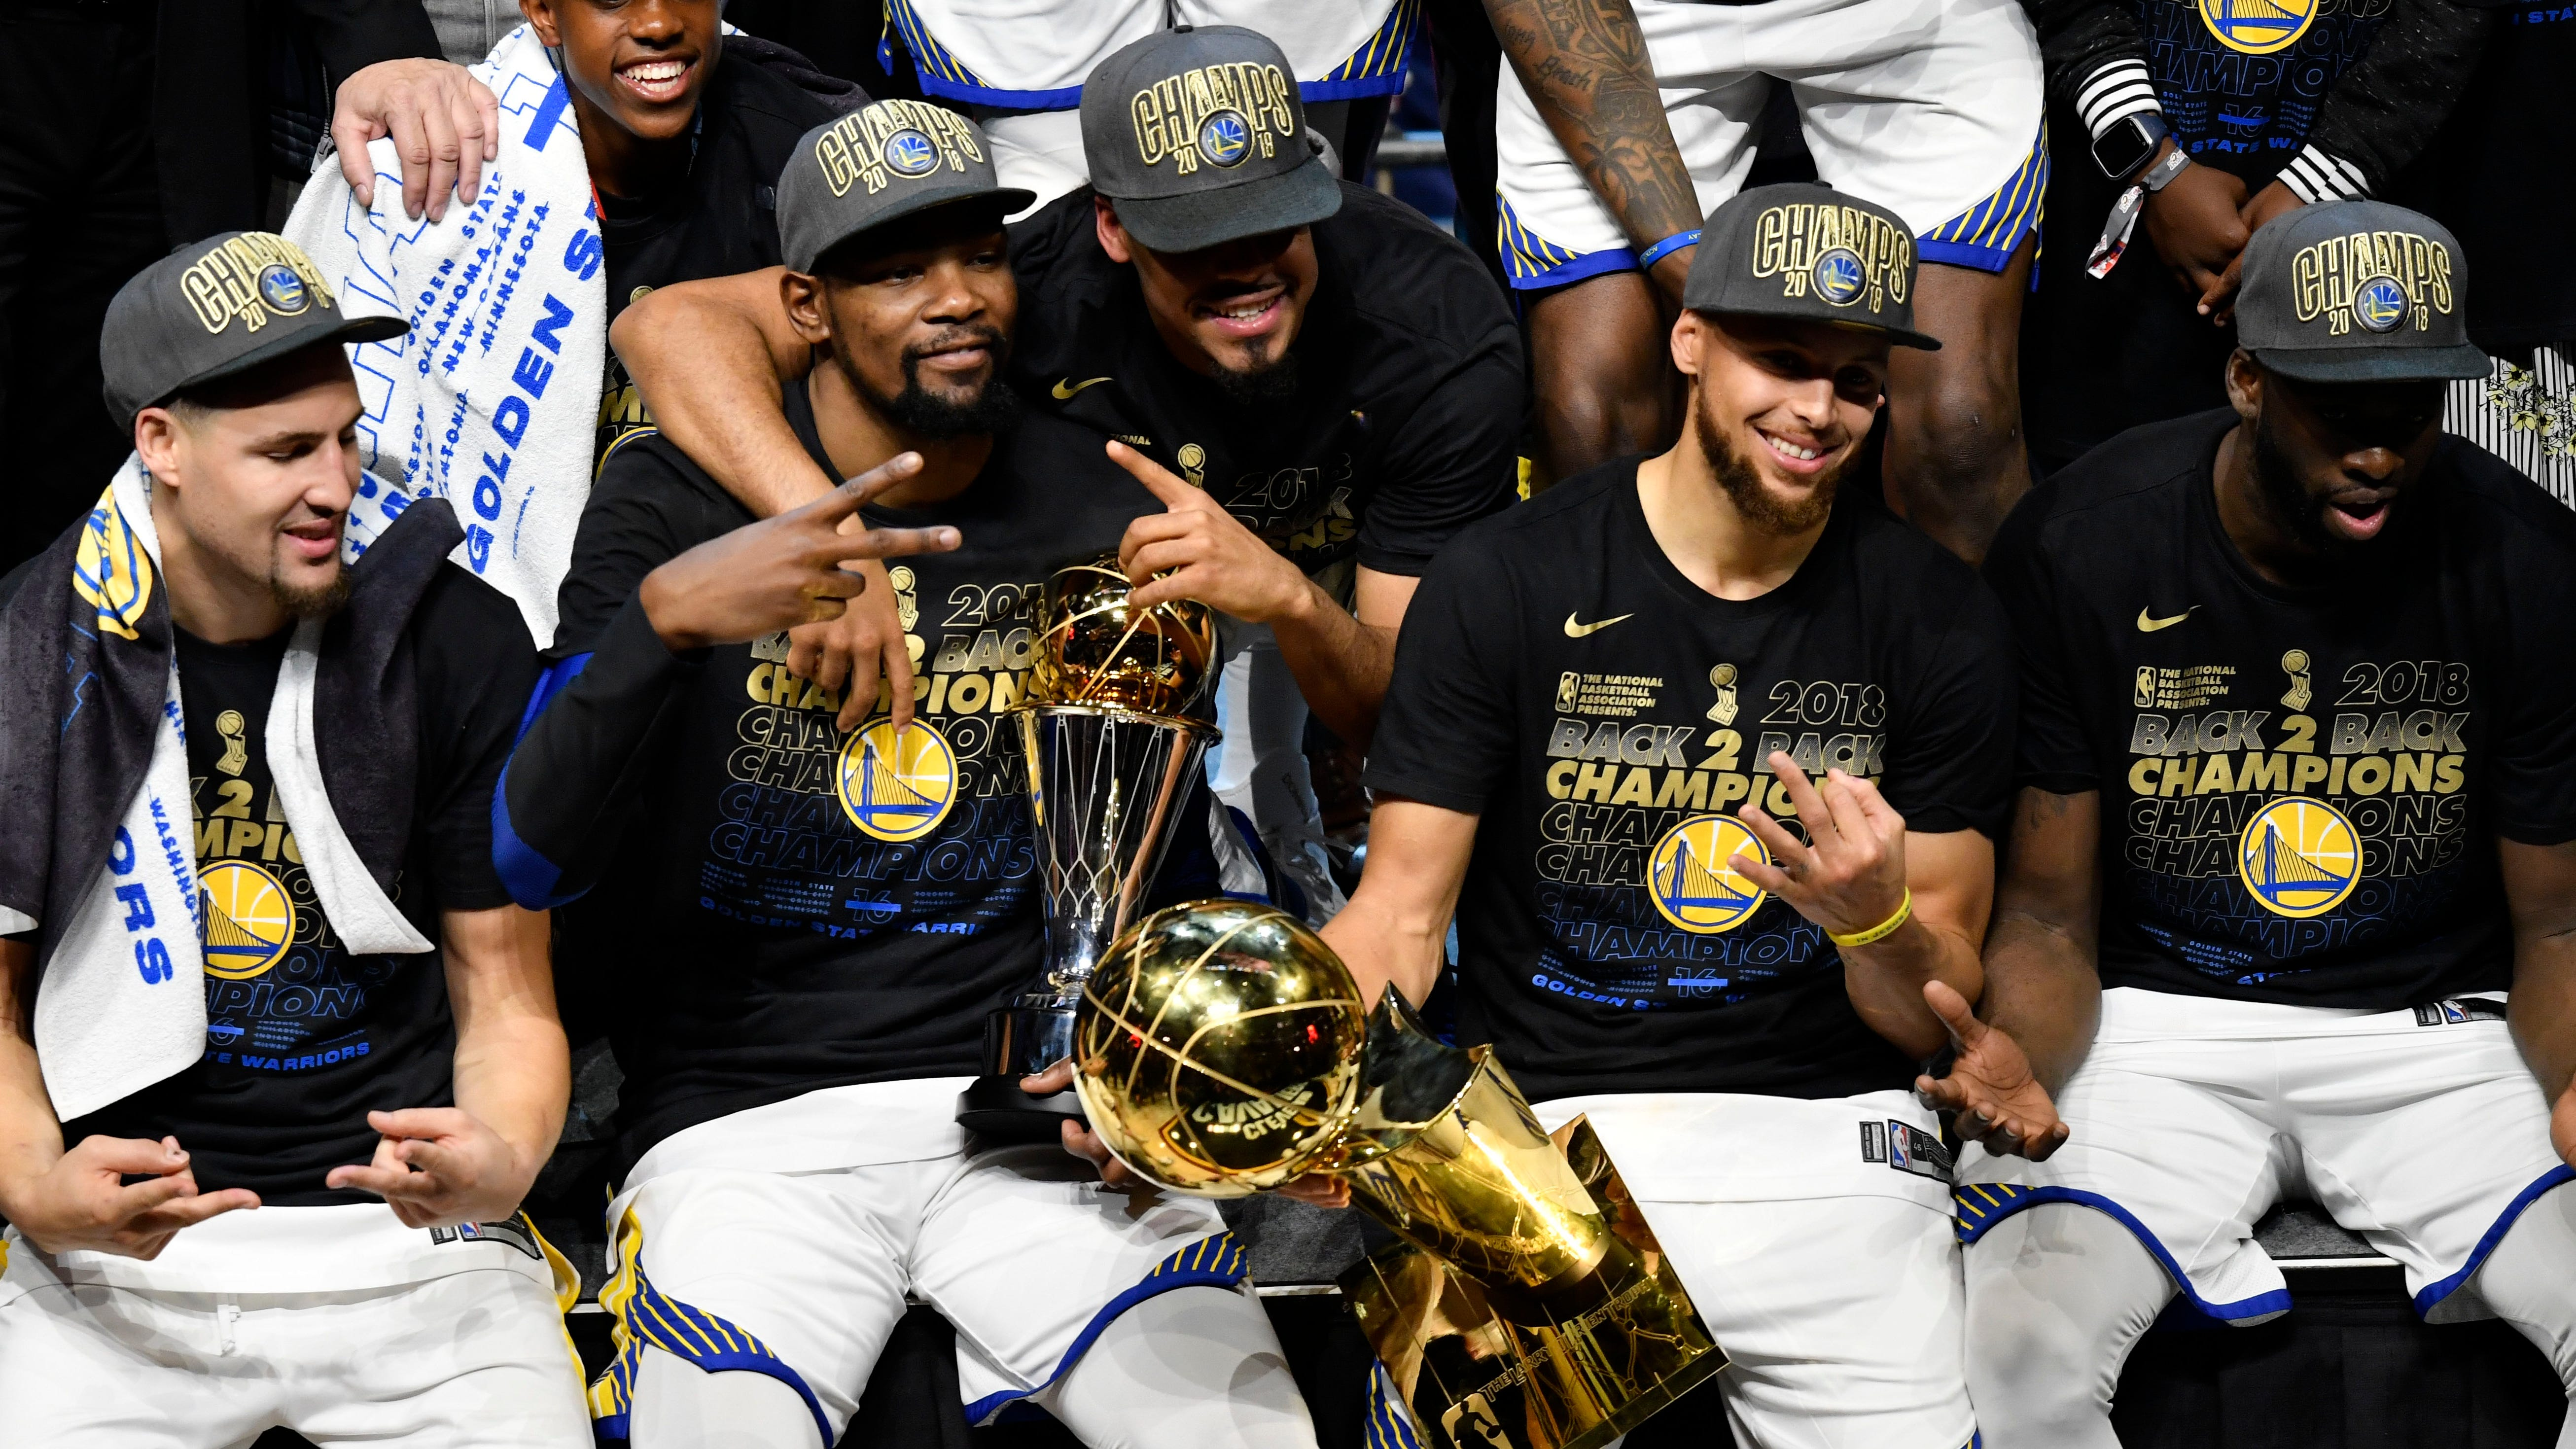 The champions Warriors unsurprisingly lead the league in the Westgate's first win totals, but the sportsbook is also bullish on the new-look Lakers.